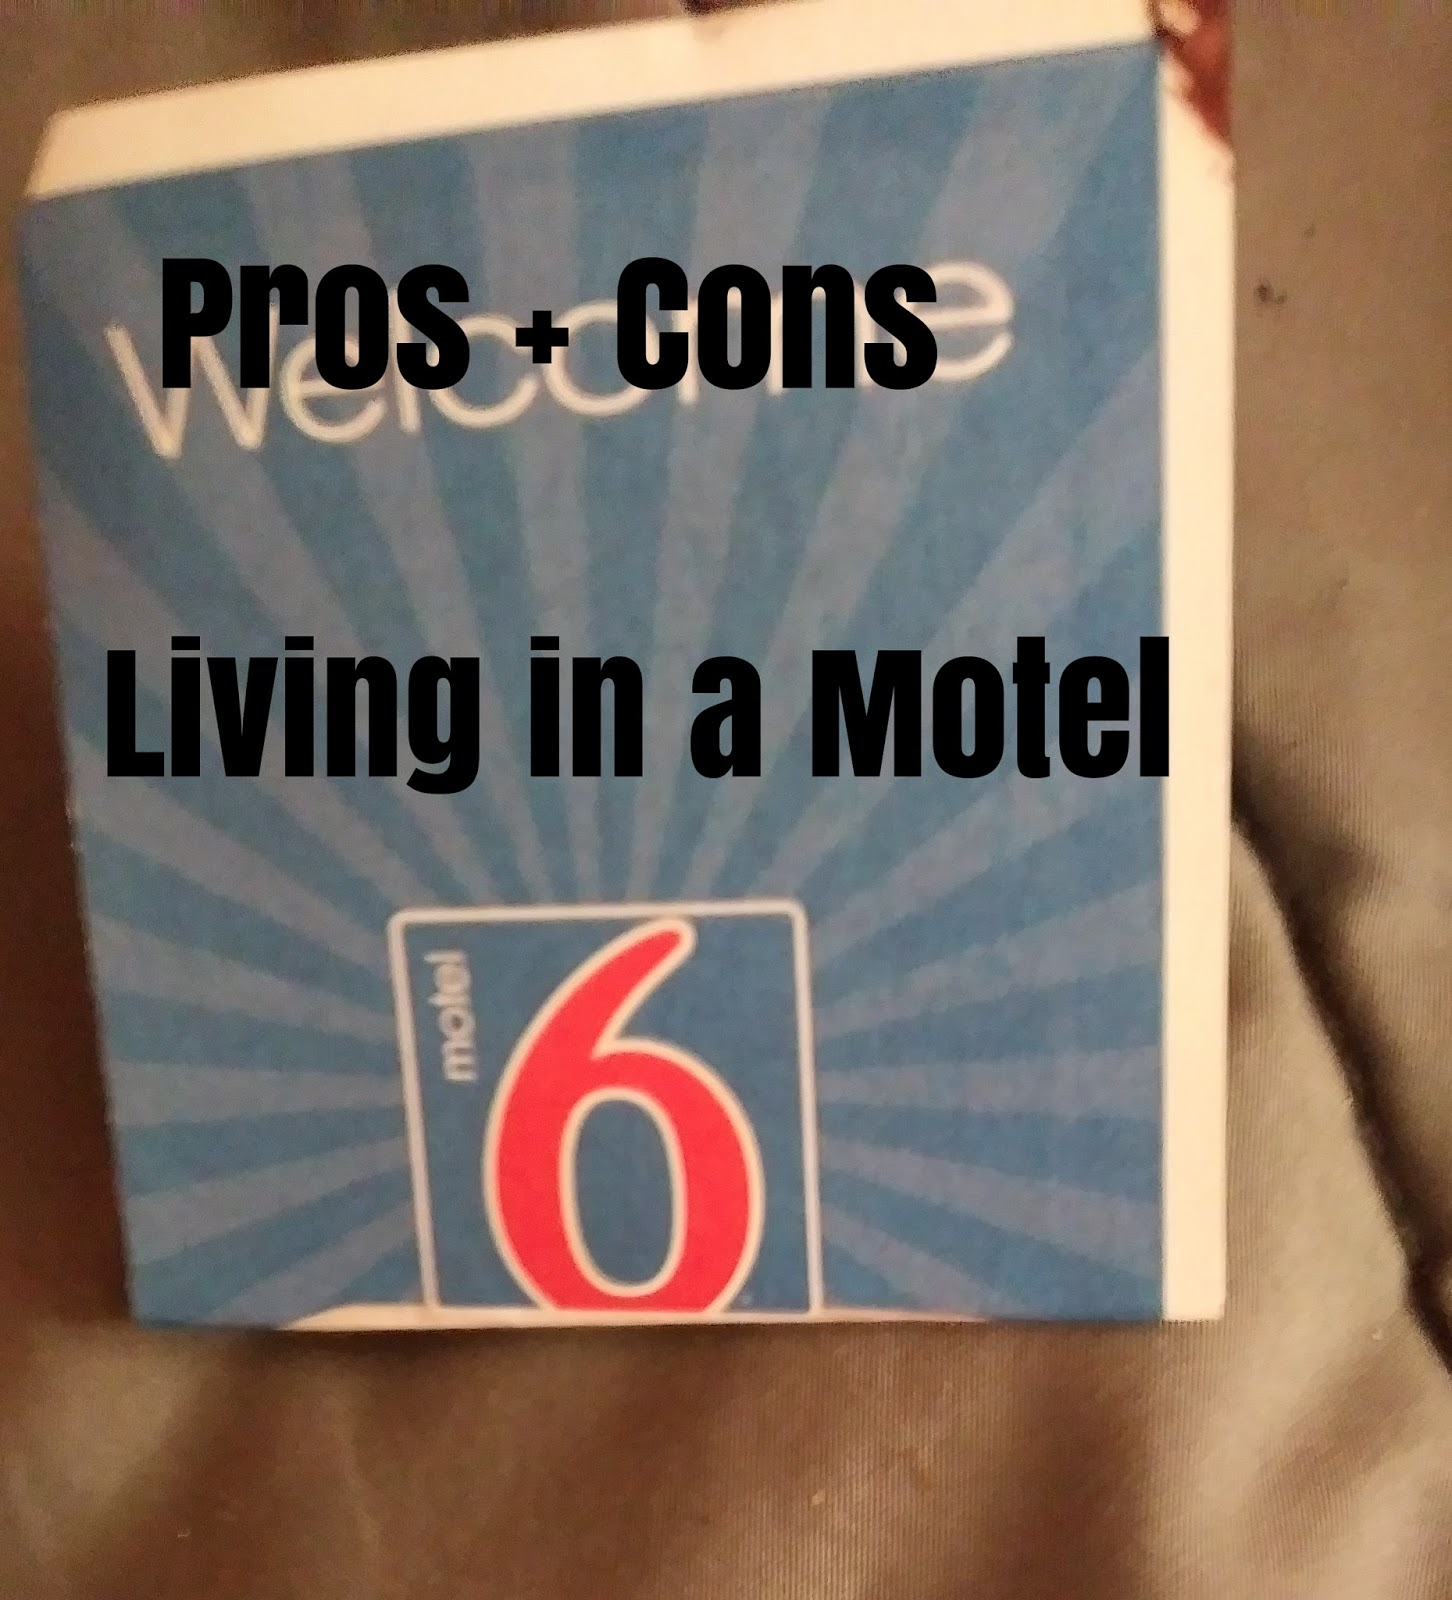 pros and cons of owning a motel